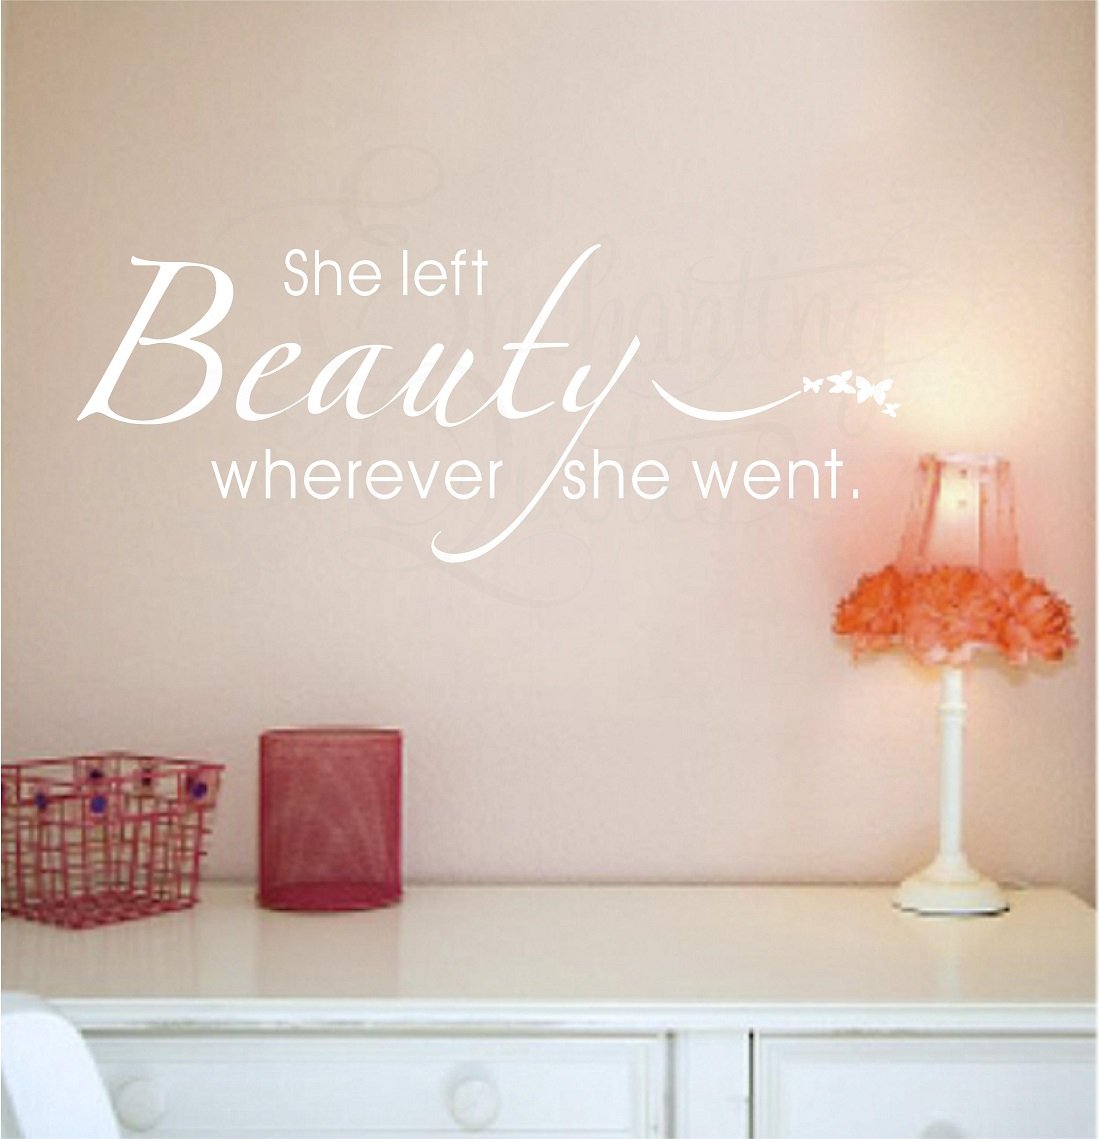 Vinyl Laundry Room Sayings She Left Beauty Wherever She Went Vinyl Wall Saying Quotes